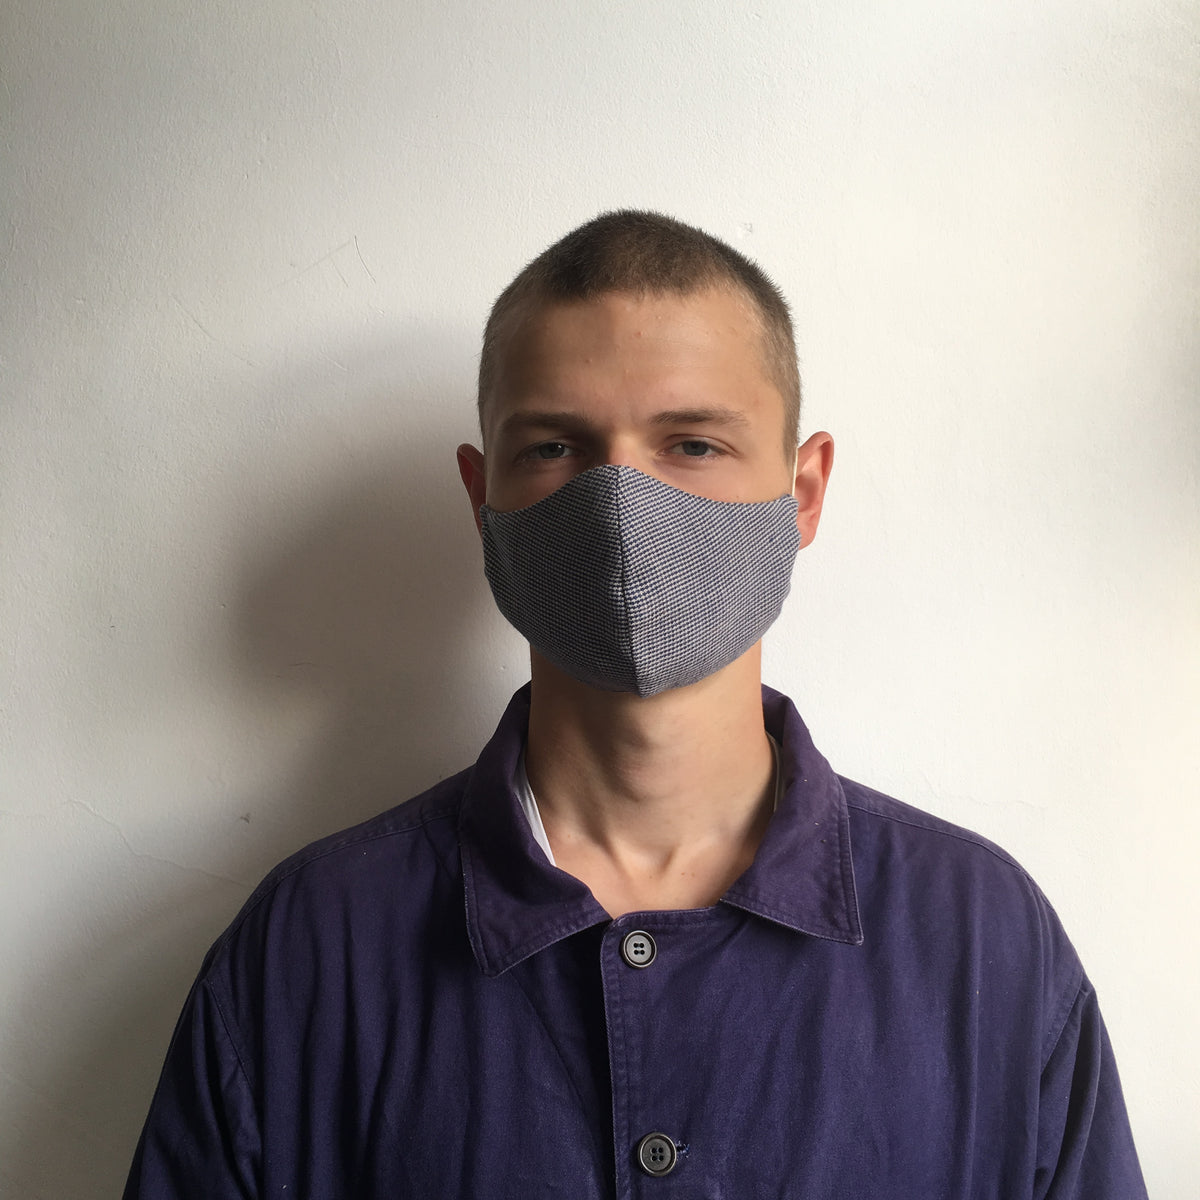 A man wearing a blue checked face mask made in the UK